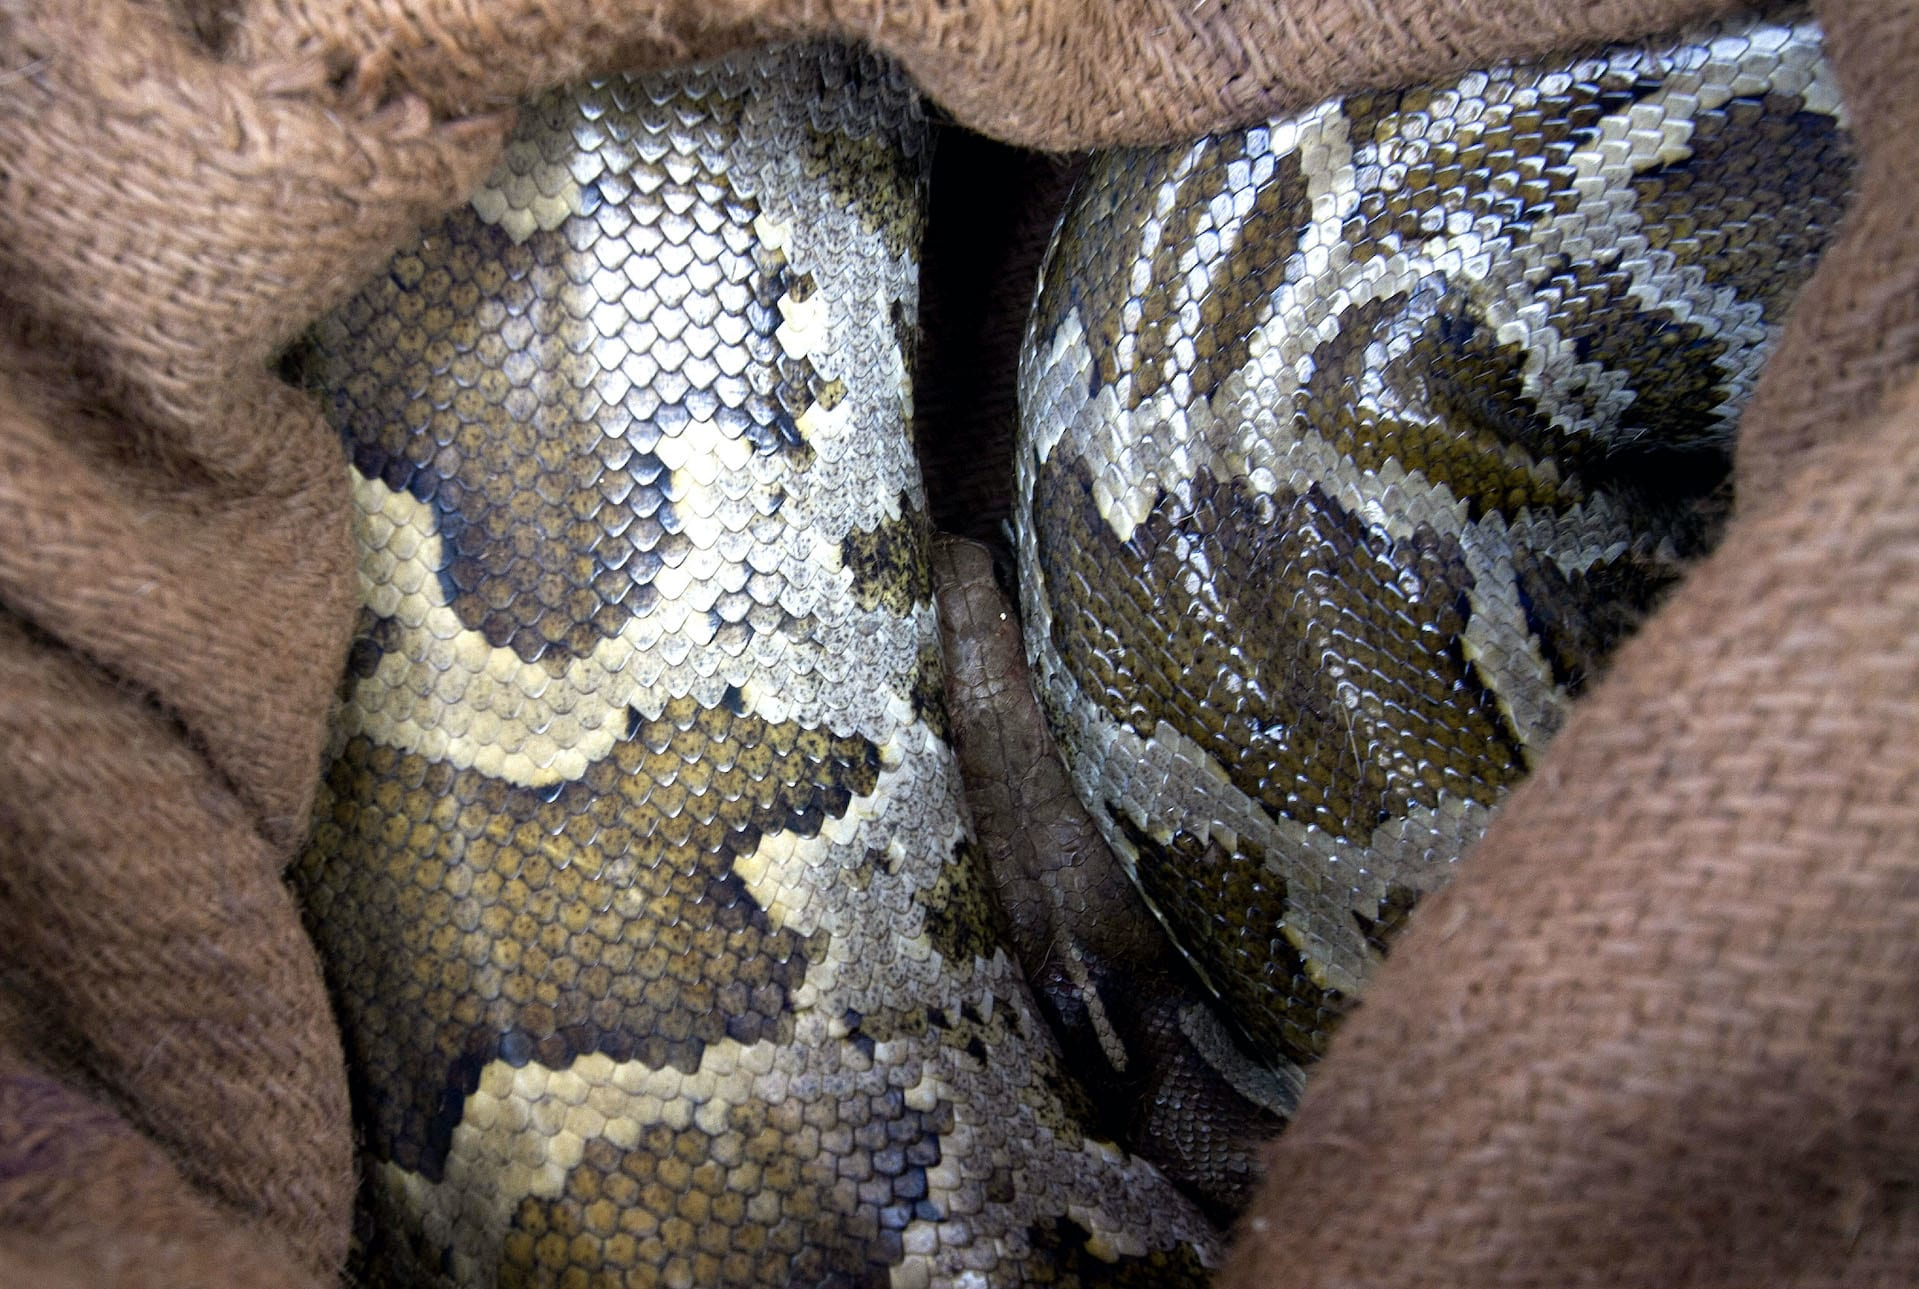 indian-rock-python-rescue-in-sac